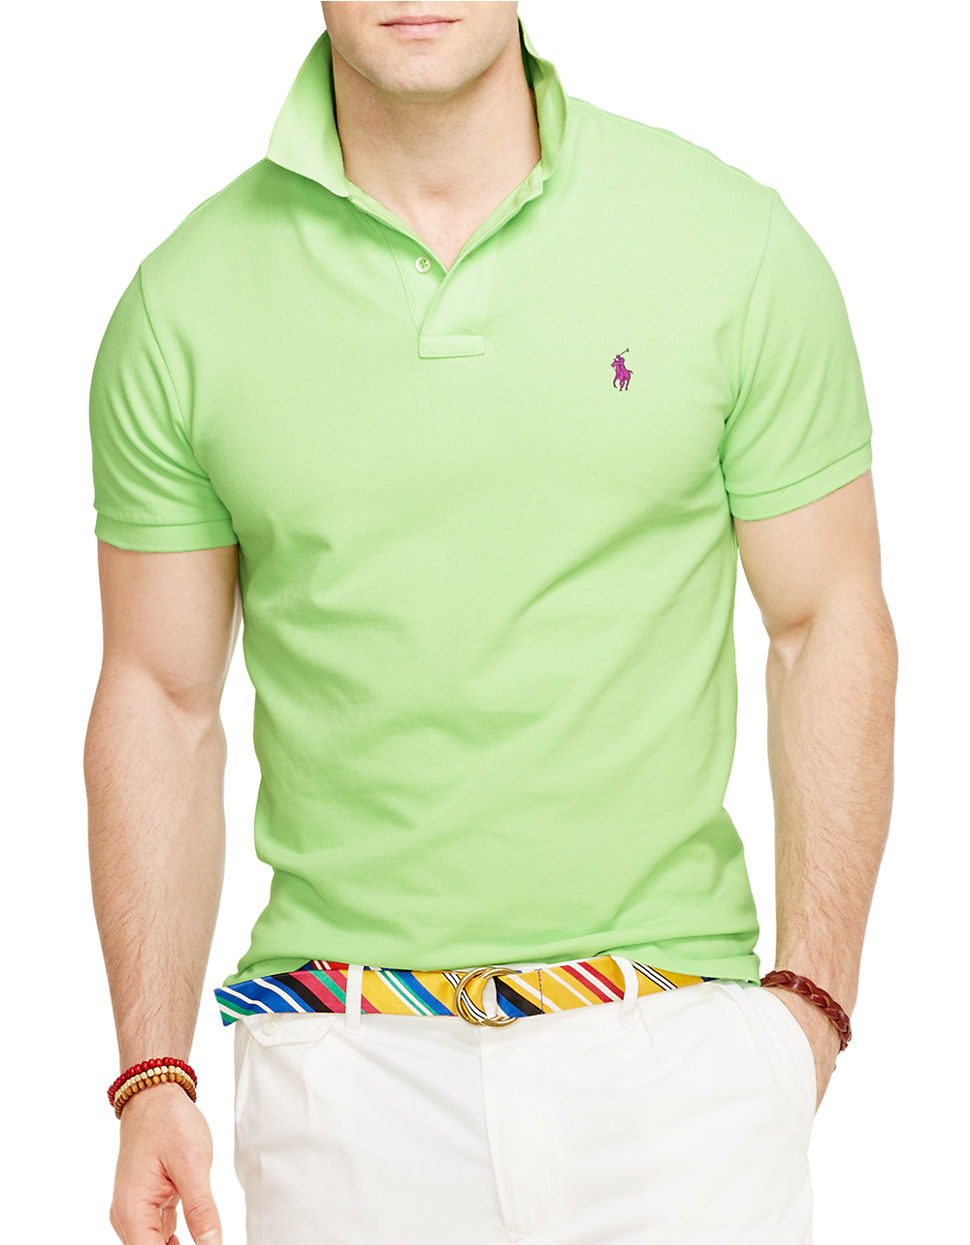 Polo ralph lauren classic fit mesh polo shirt in green for for Mens lime green polo shirt